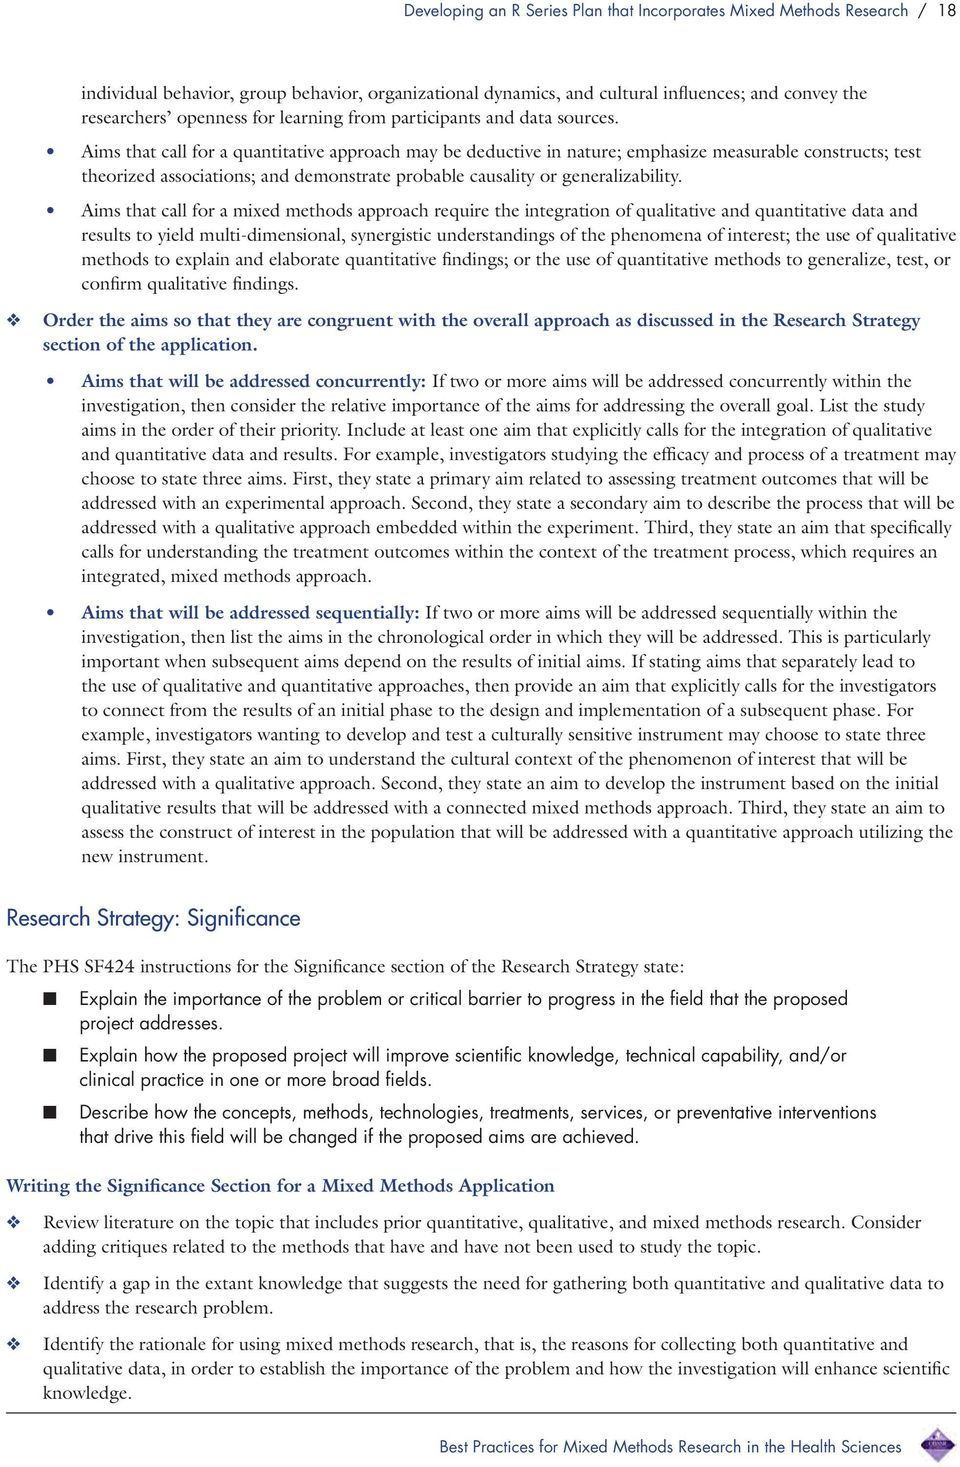 journal of mixed methods research pdf